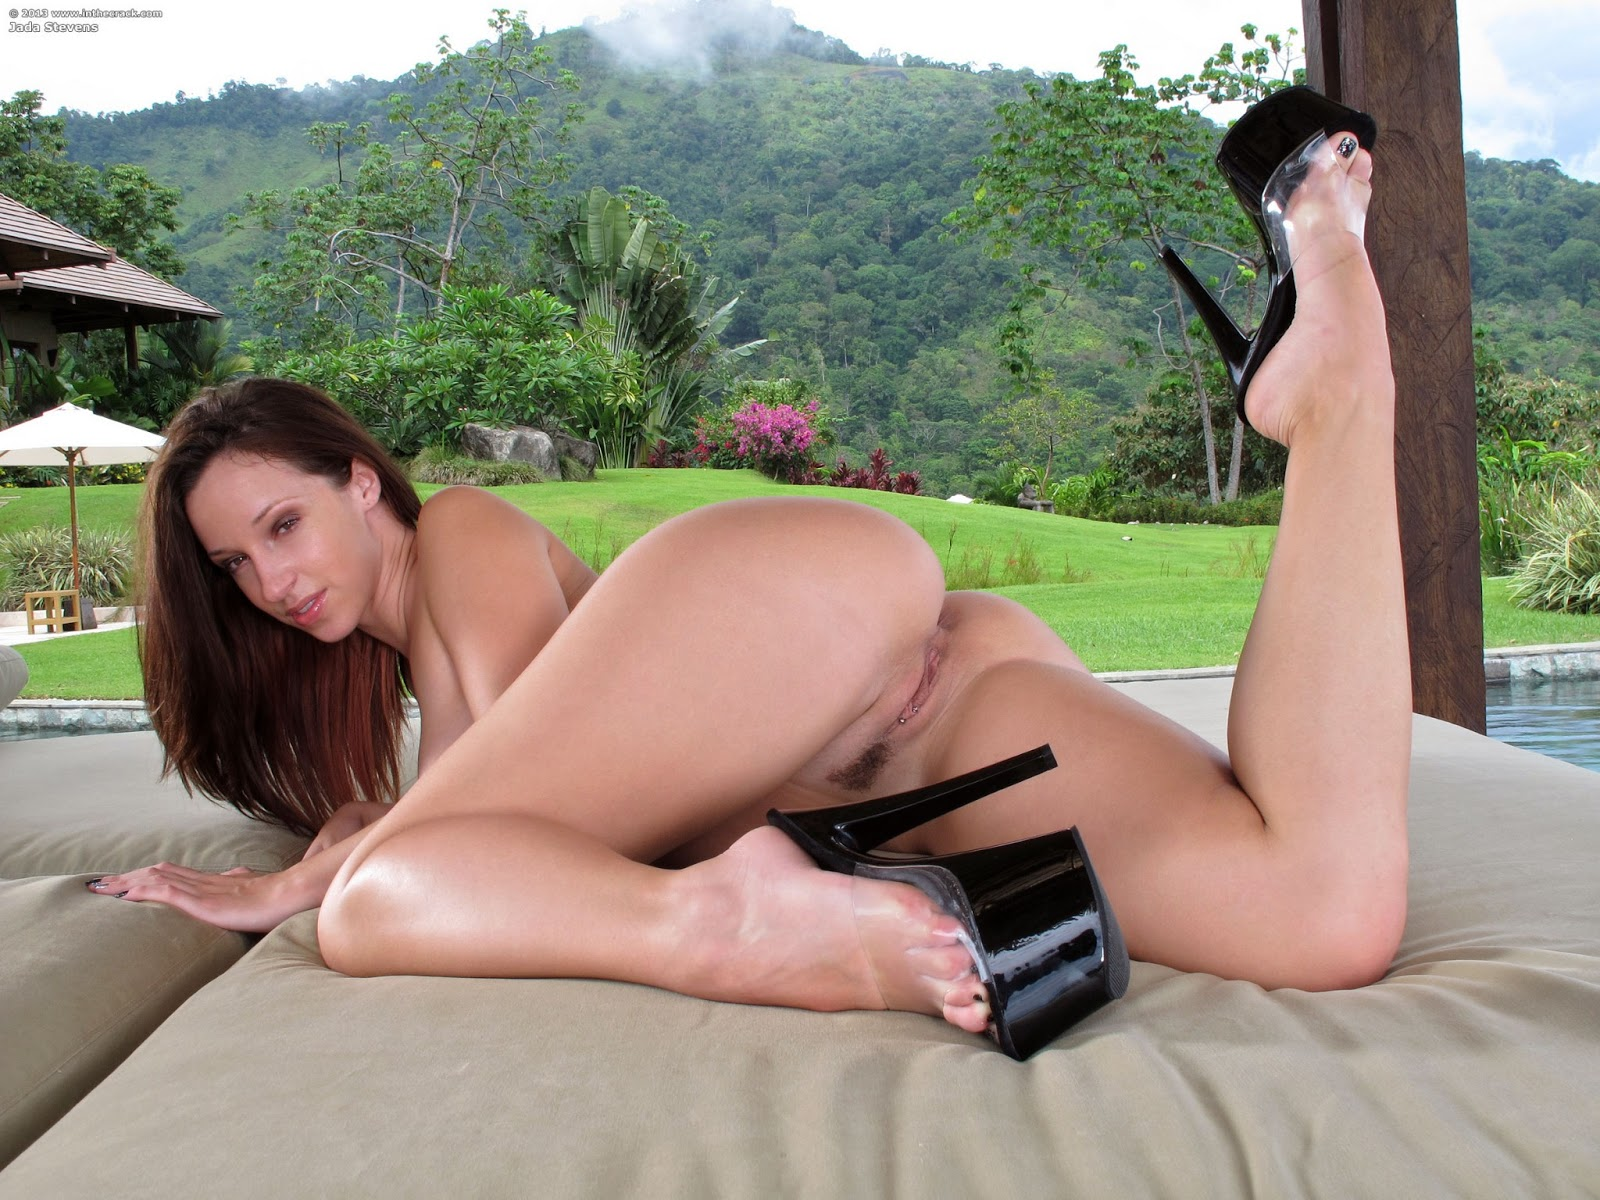 Jada Stevens – How to Get Your Girlfriend to Want More Sex With You